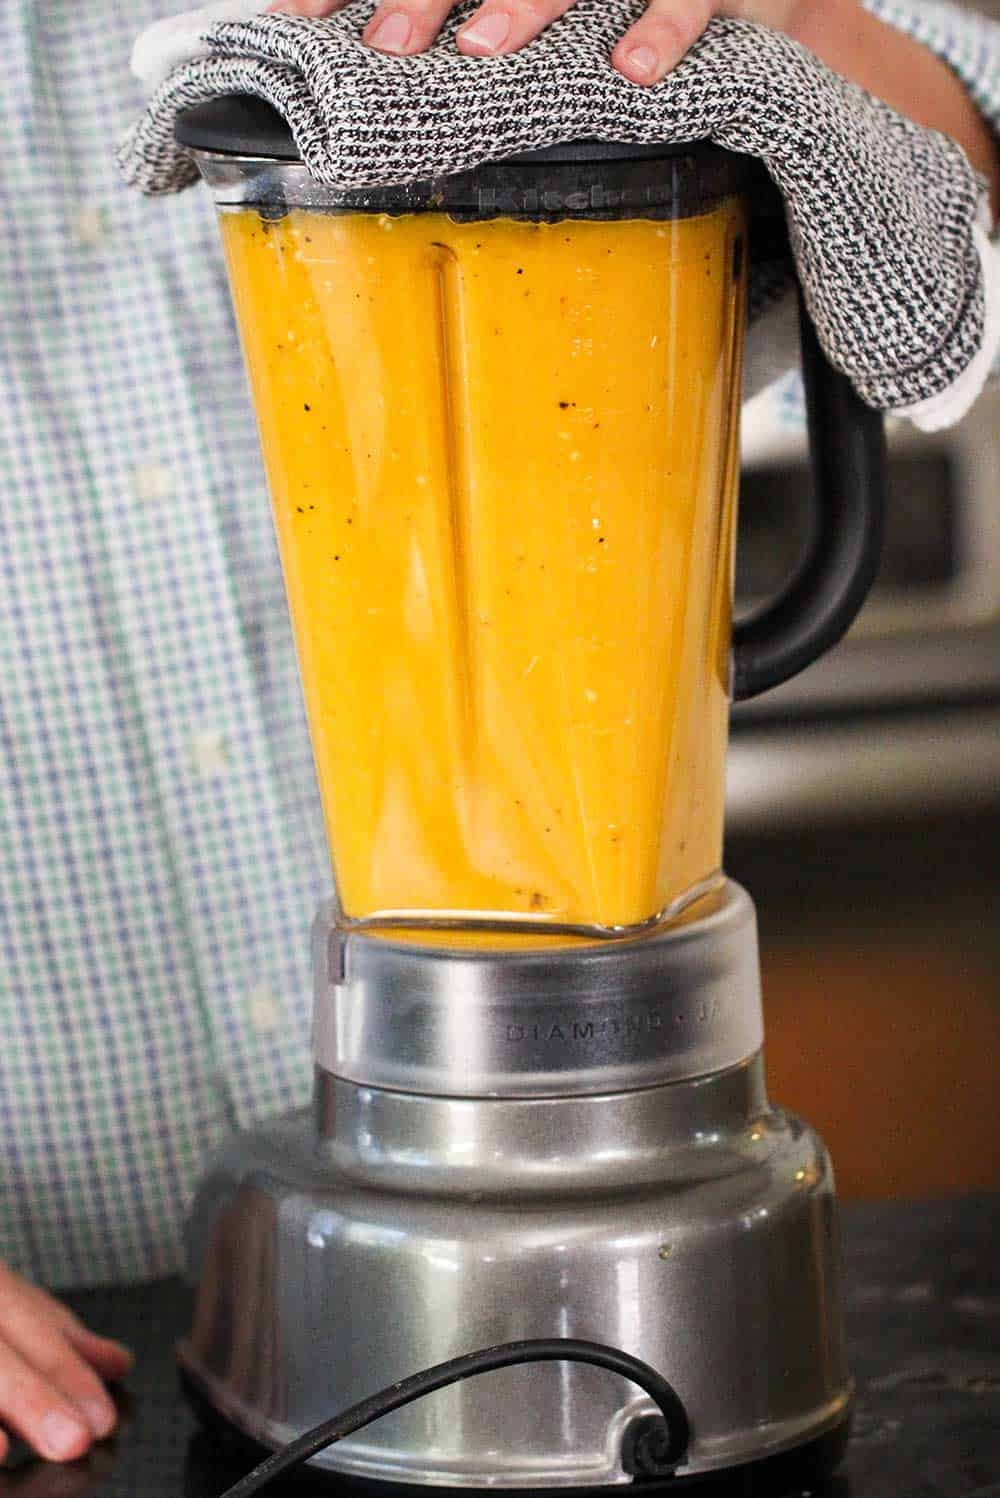 A blender full of roasted butternut squash soup that has been pureed.